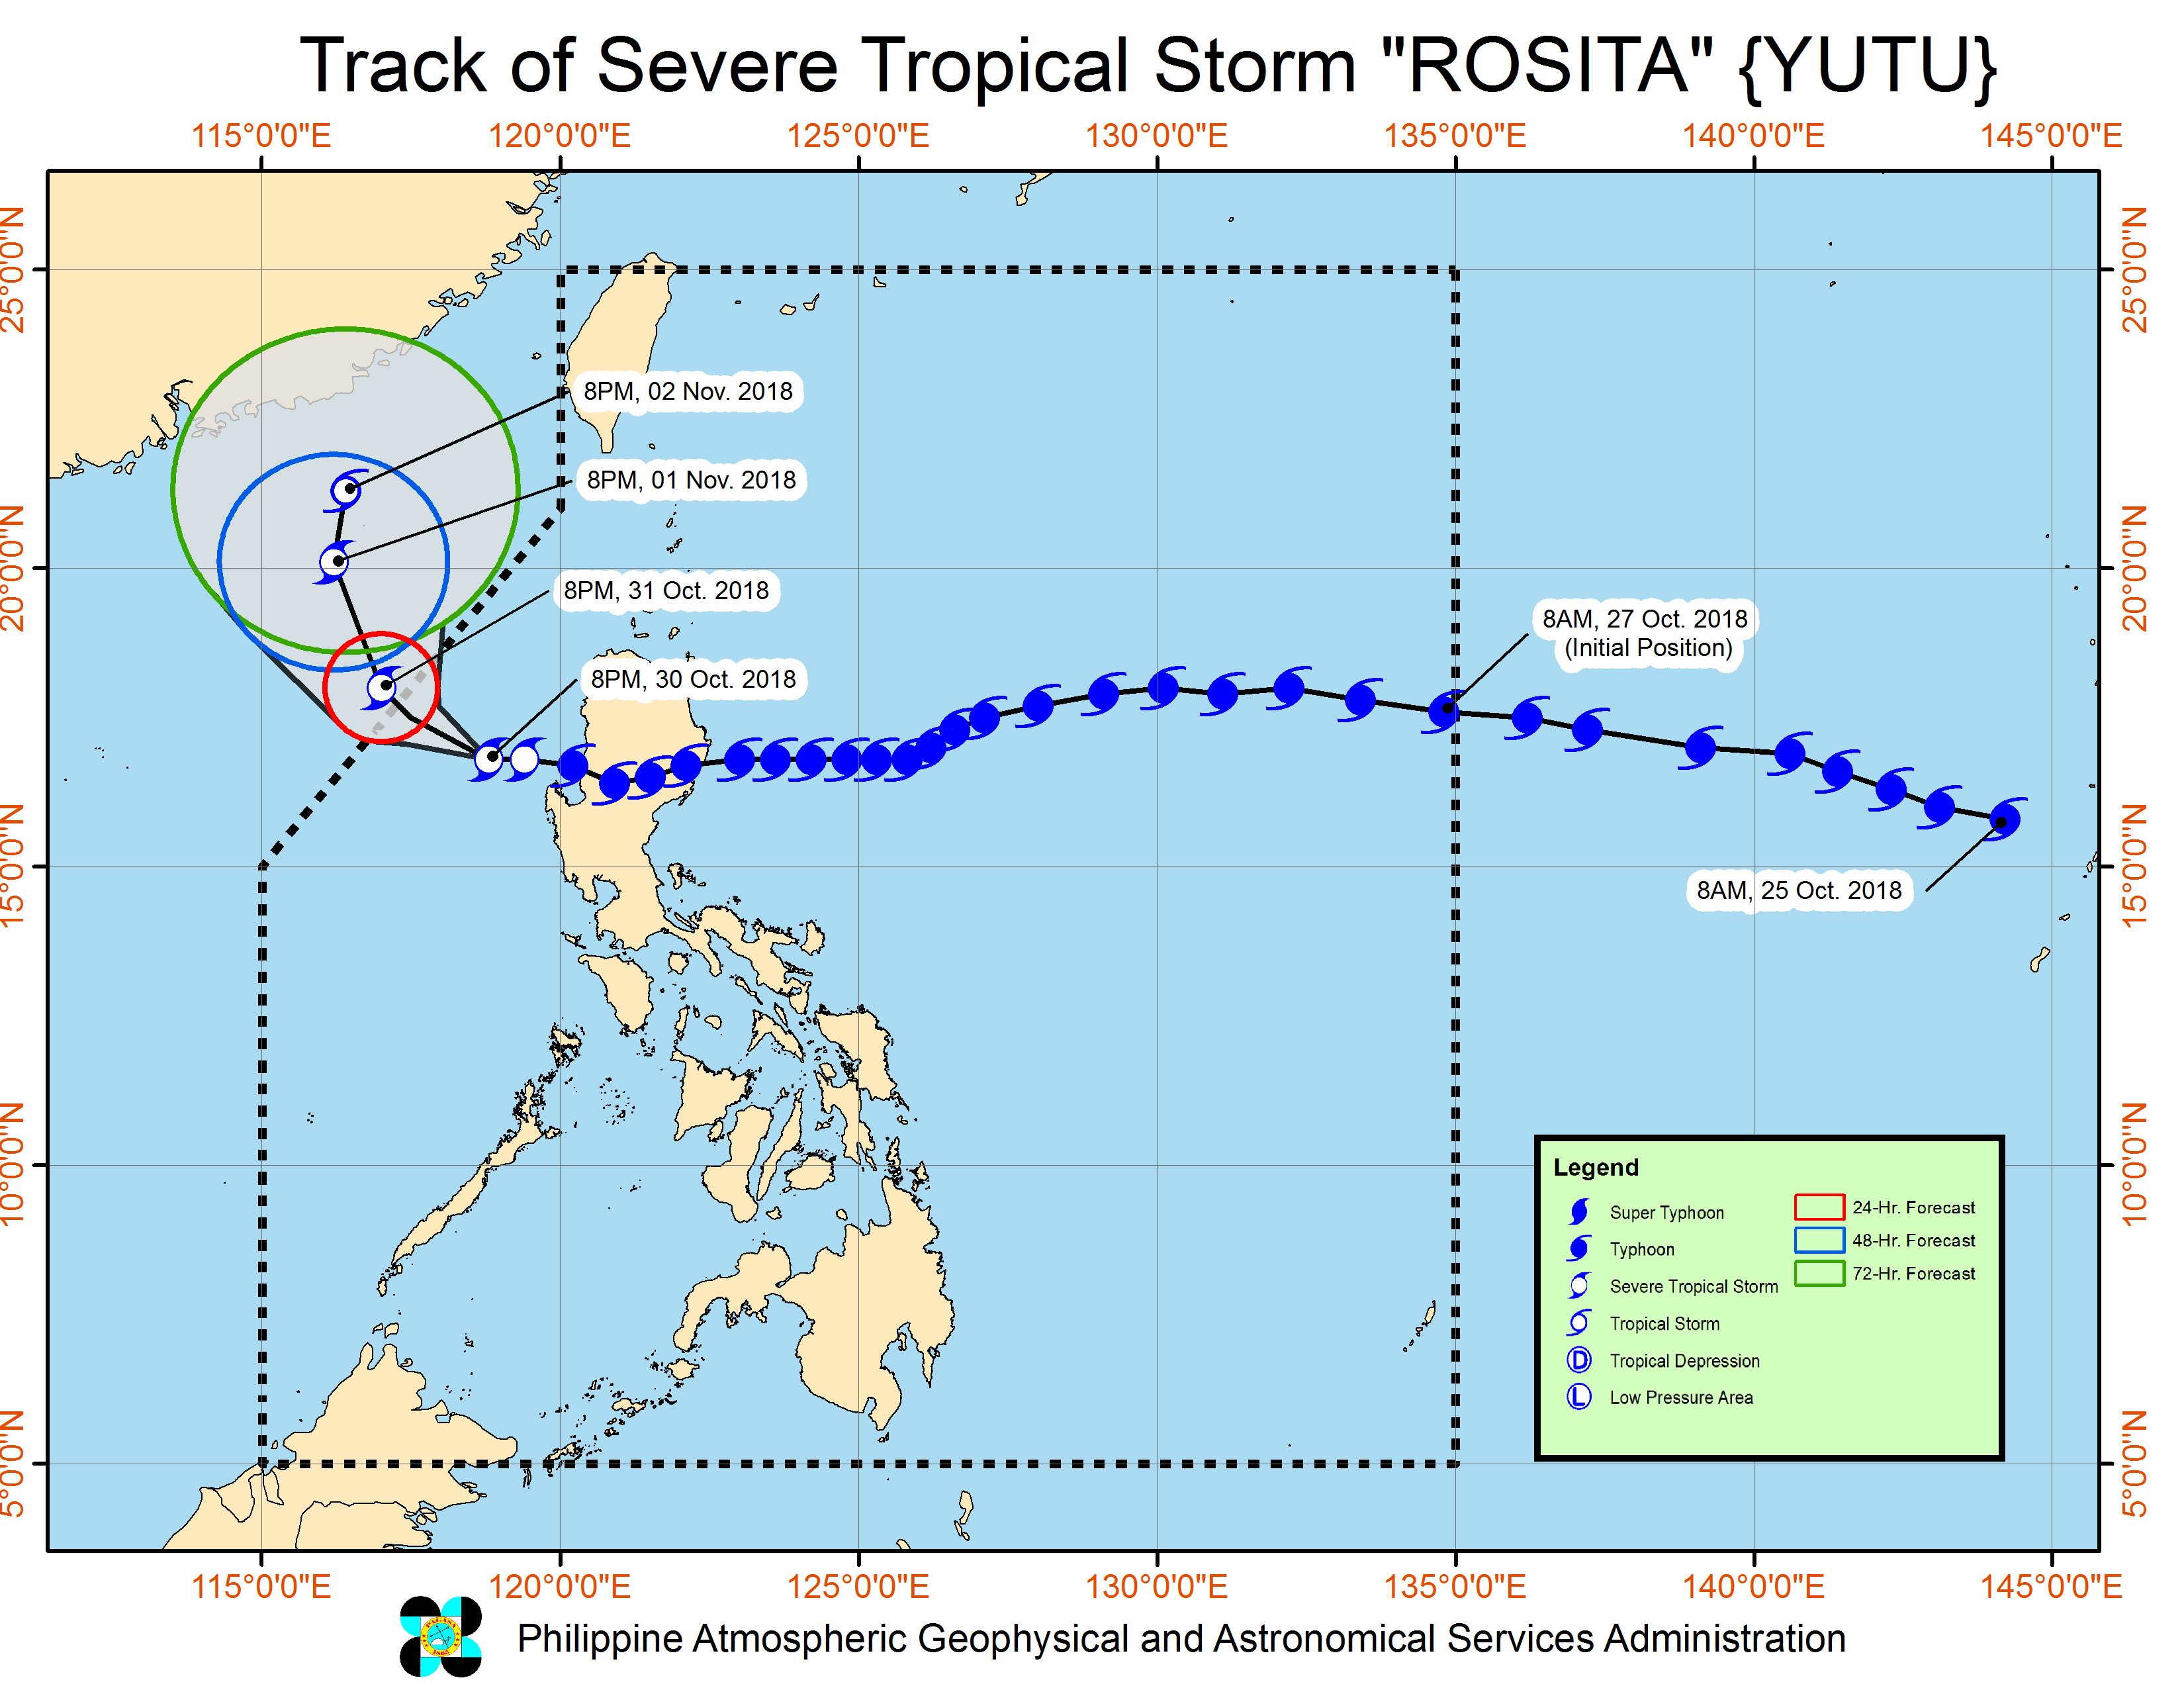 Forecast track of Severe Tropical Storm Rosita (Yutu) as of October 30, 2018, 11 pm. Image from PAGASA